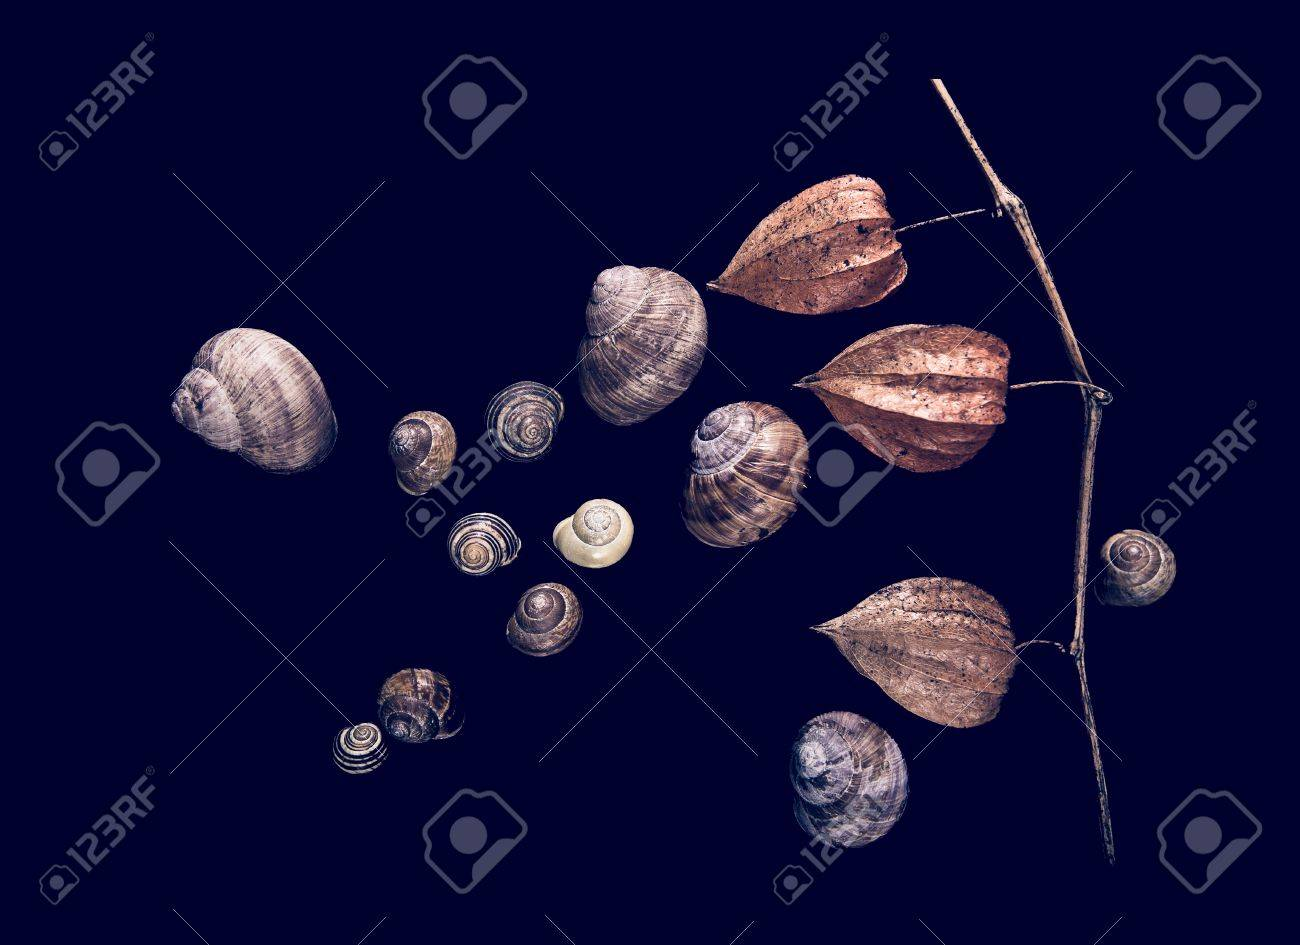 colse up physalis peruviana flower and snail shells - 62058275